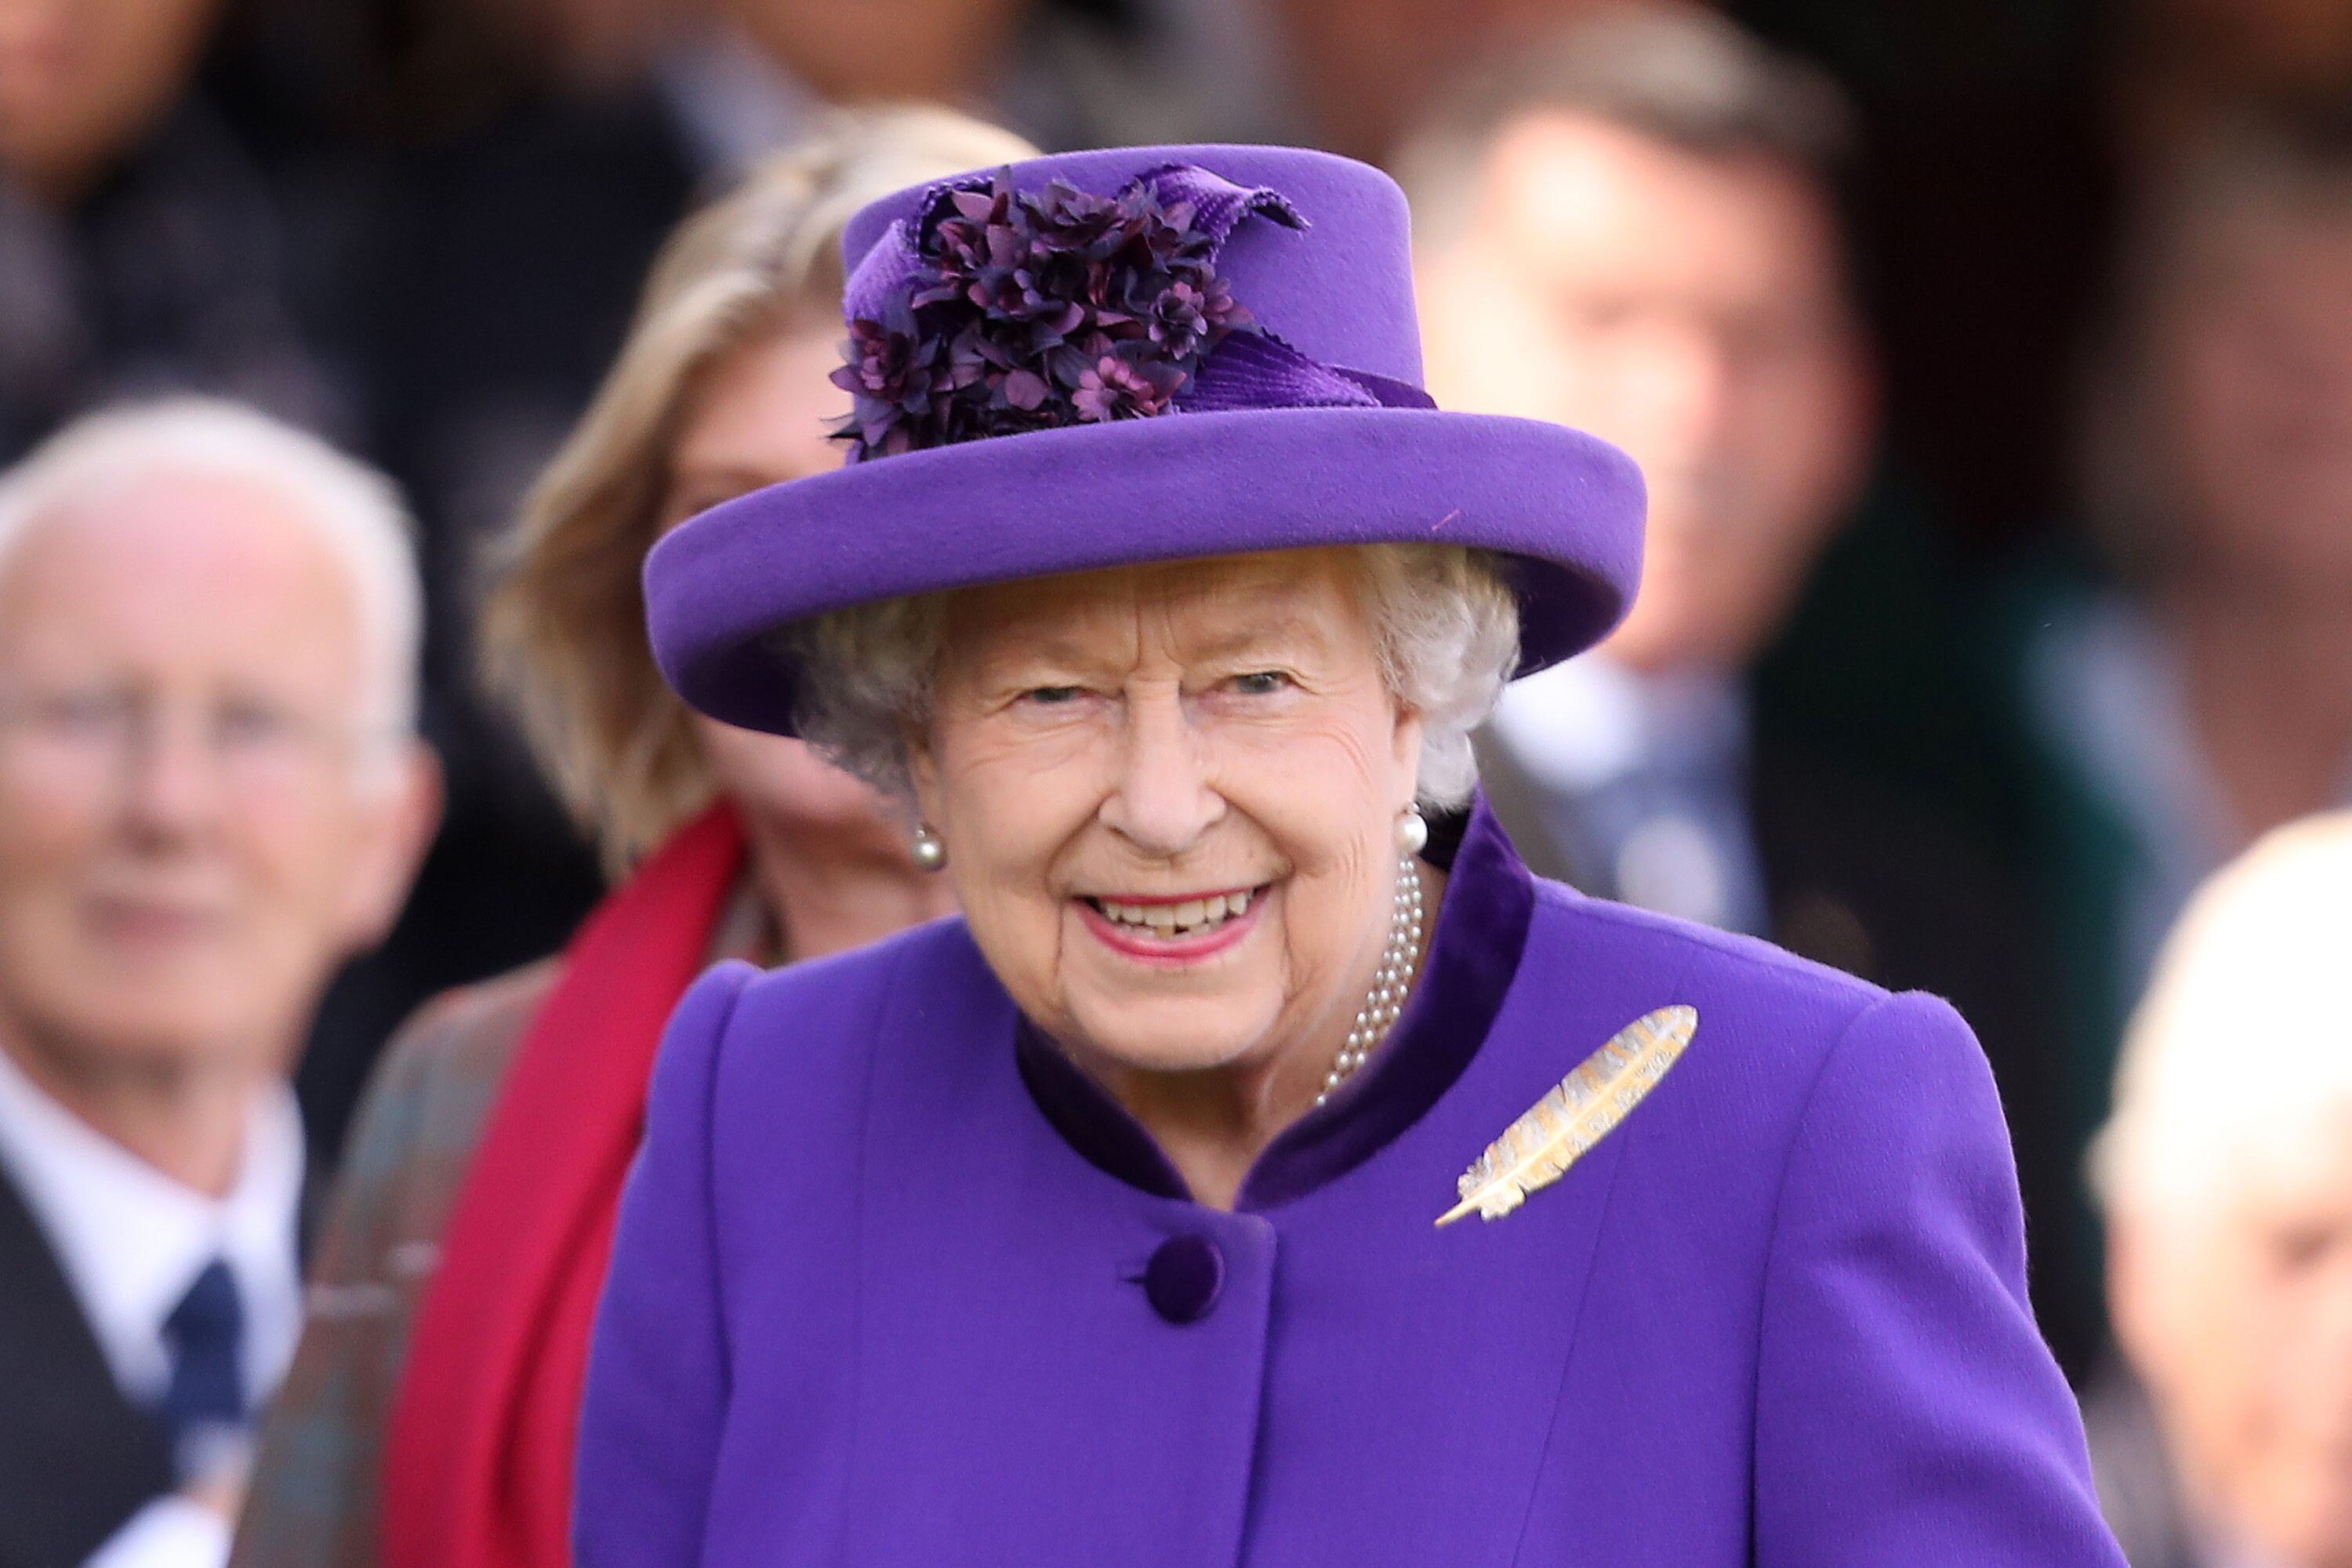 Reine elizabeth ii aux Jeux Braemar Highland le 07 septembre 2019 en Ecosse | Photo: Chris Jackson / Getty Images